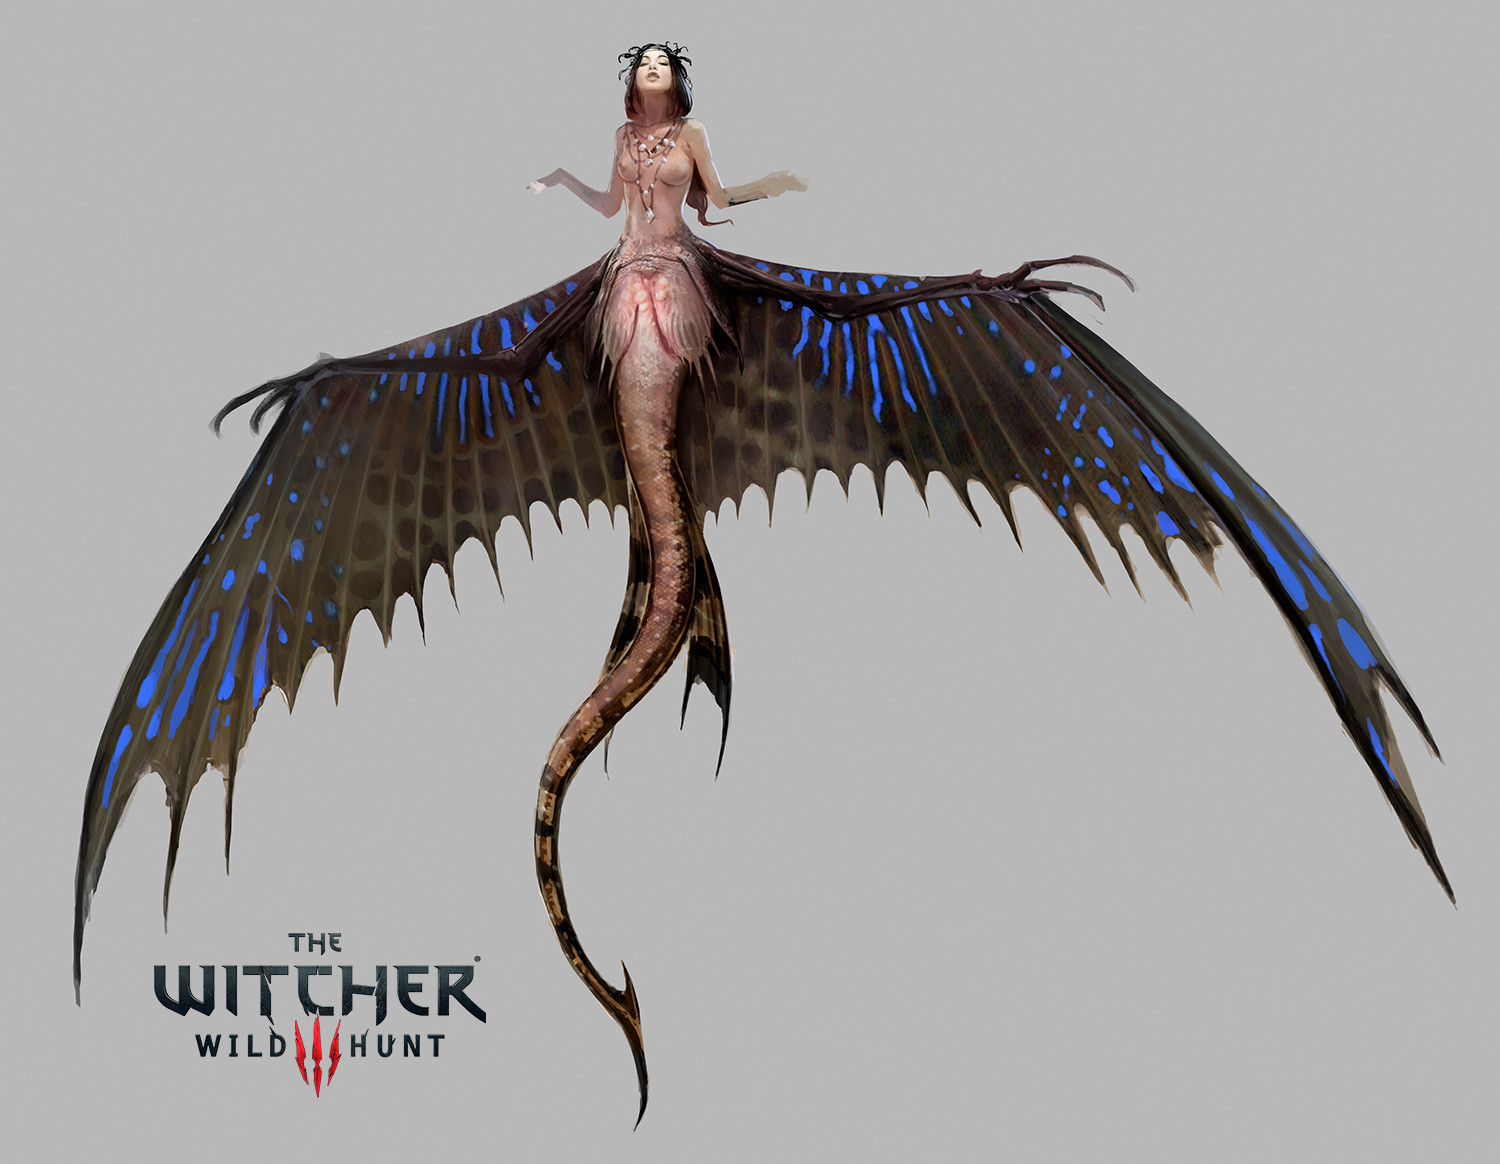 Mermaid The Witcher 3 Wild Hunt